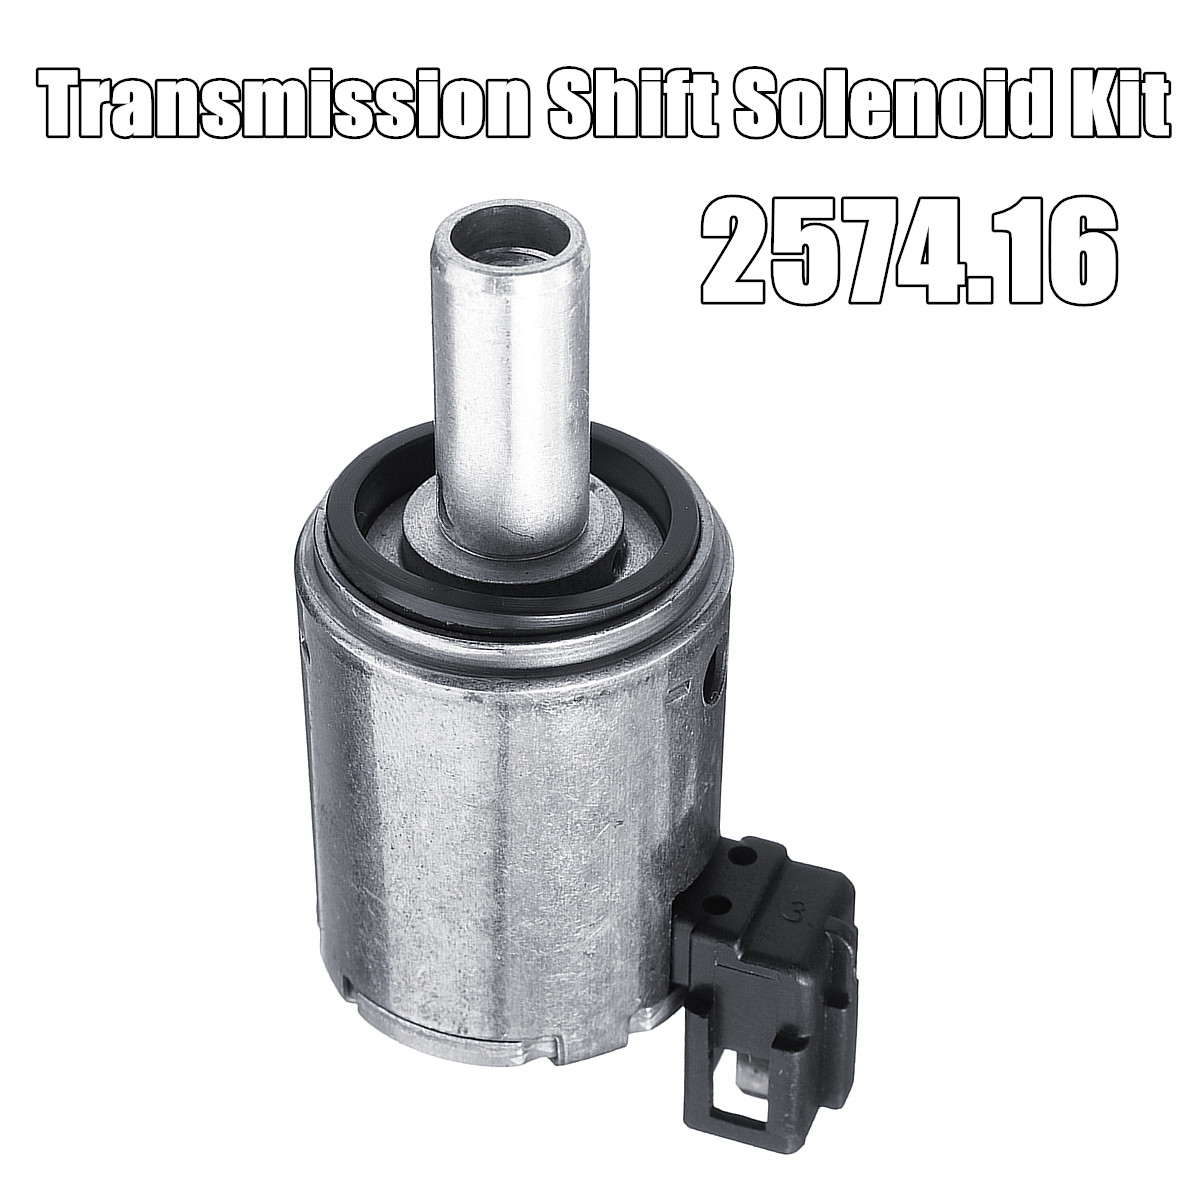 medium resolution of transmission shift solenoid valve 2574 16 for citroen peugeot renault al4 dpo 36x26x59mm solenoid kit auto replacement parts best seller july 2019